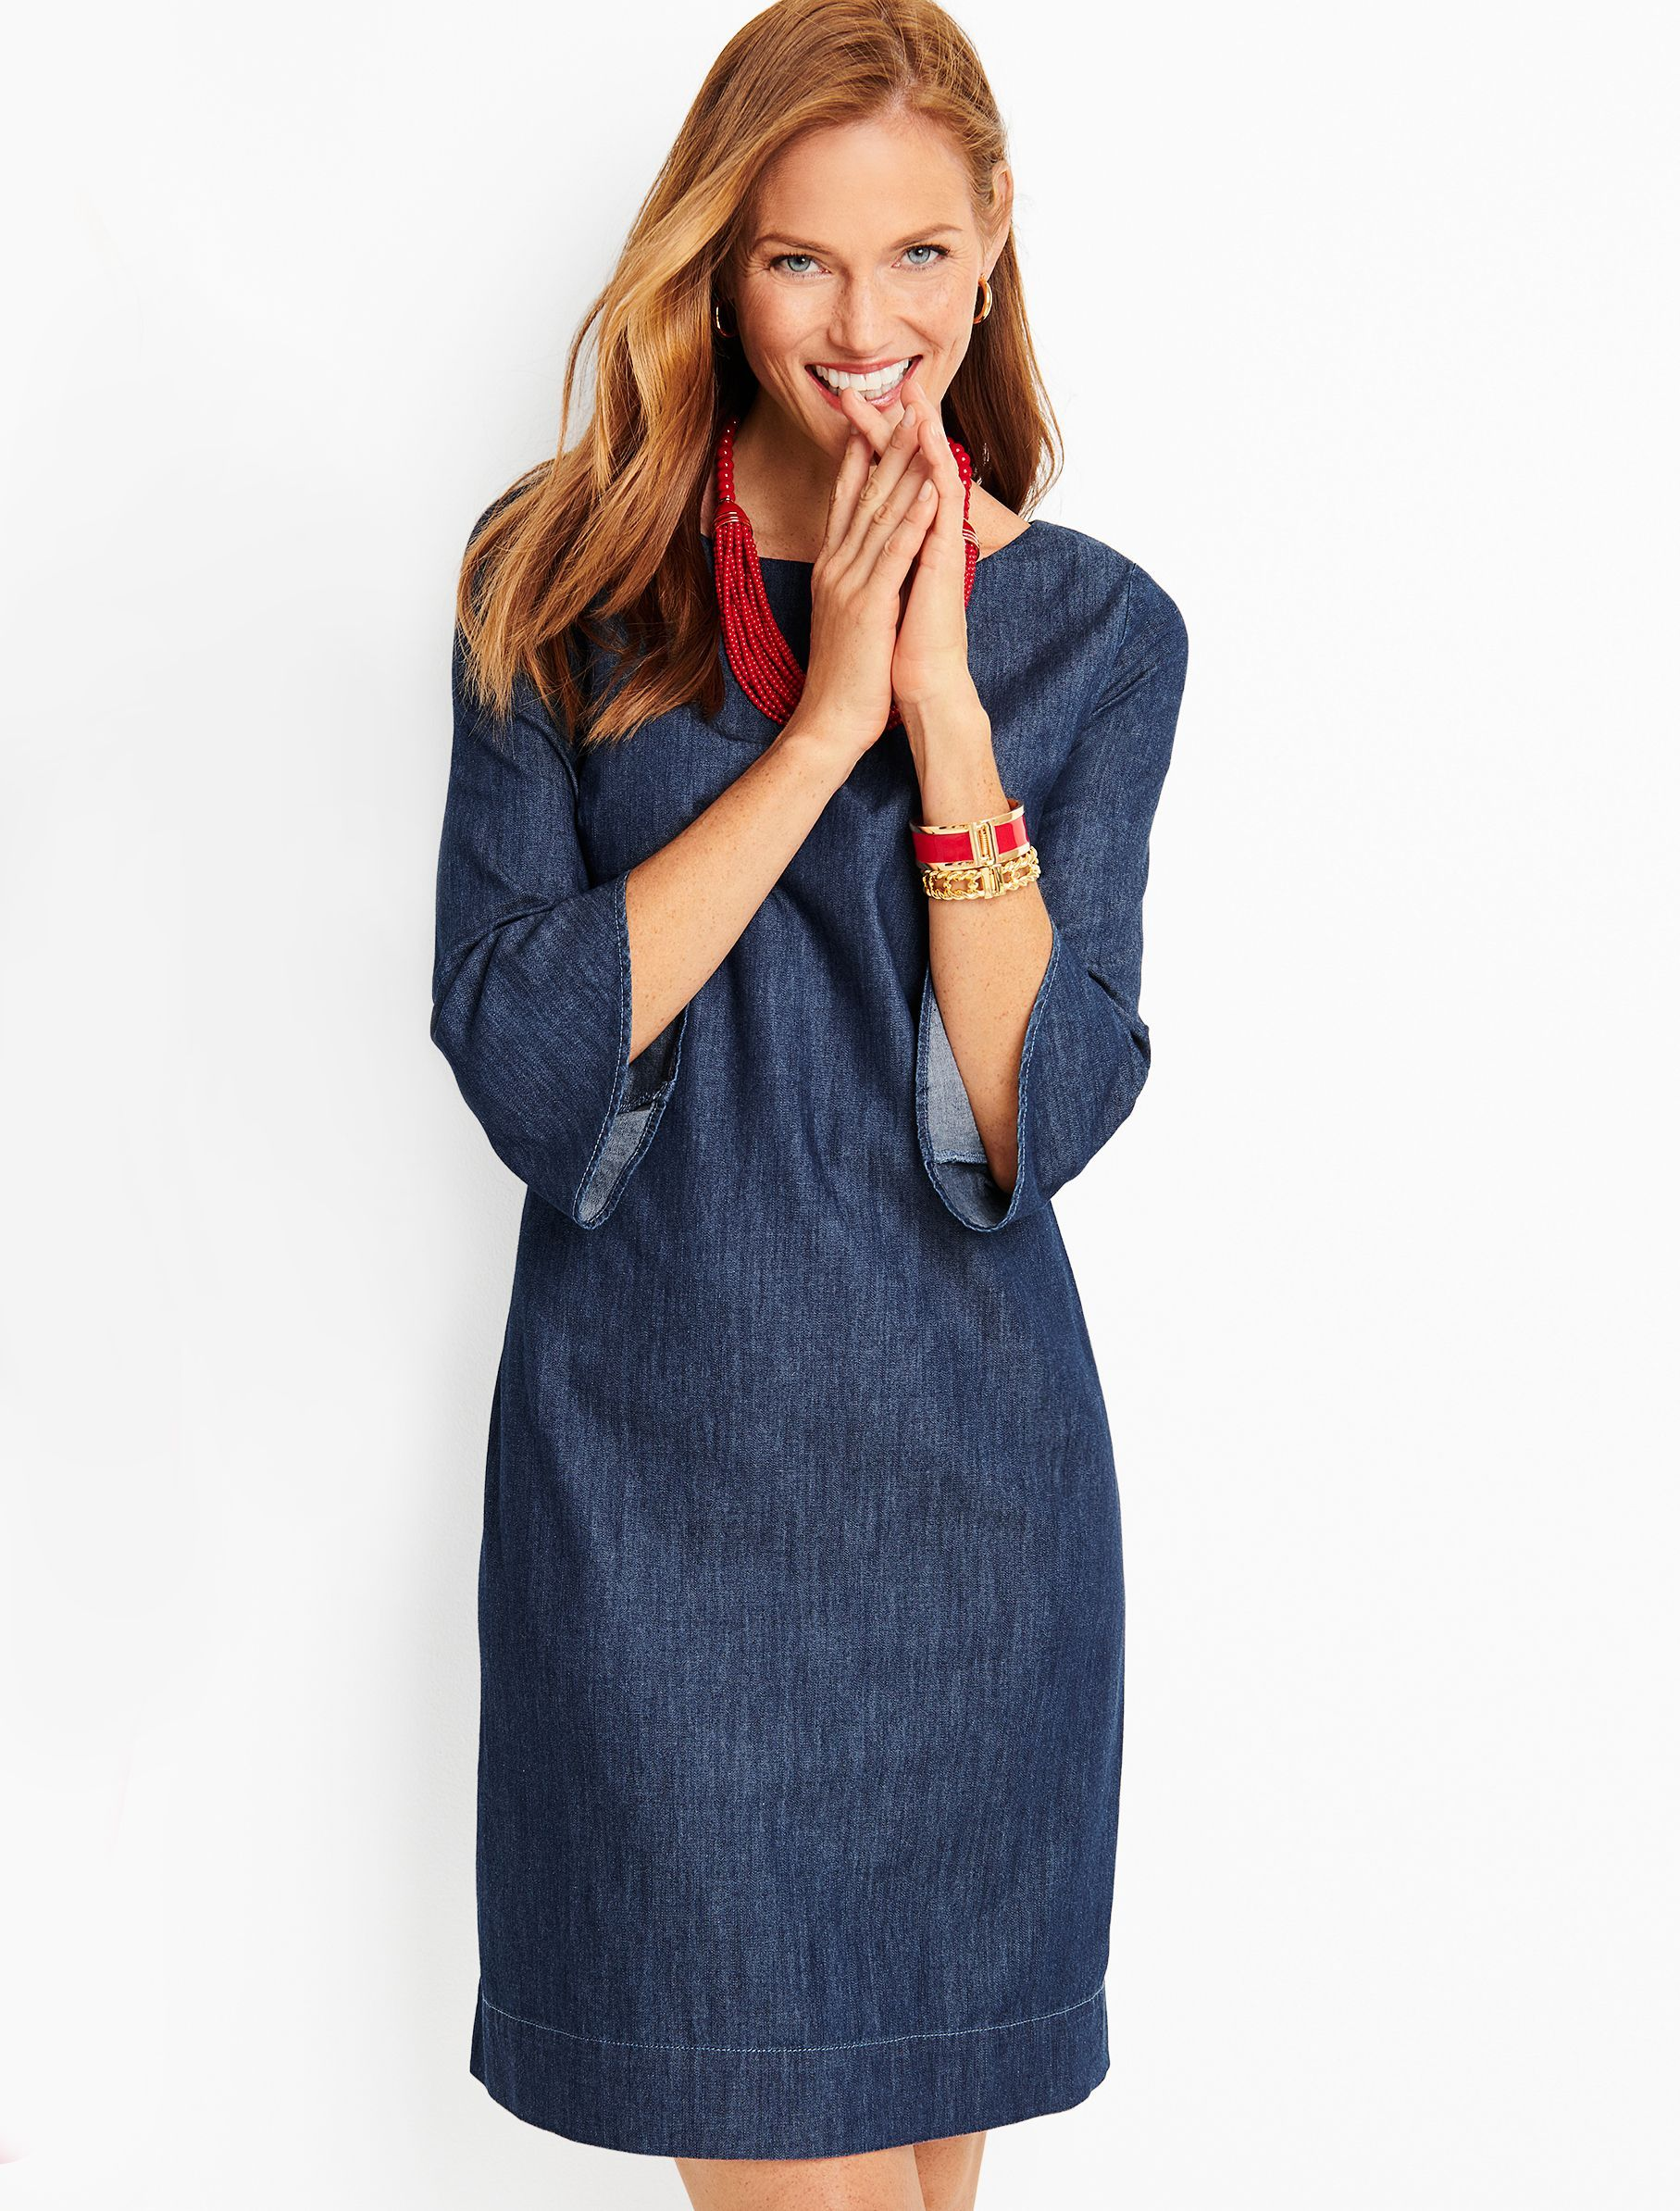 Denim Goes Feminine Update In A Pretty Flounce Sleeve Silhouette Our Favorite Casual Fabric Gets Denim Fashion Outfits Demin Dress Outfit Shift Dress Outfit [ 2388 x 1815 Pixel ]